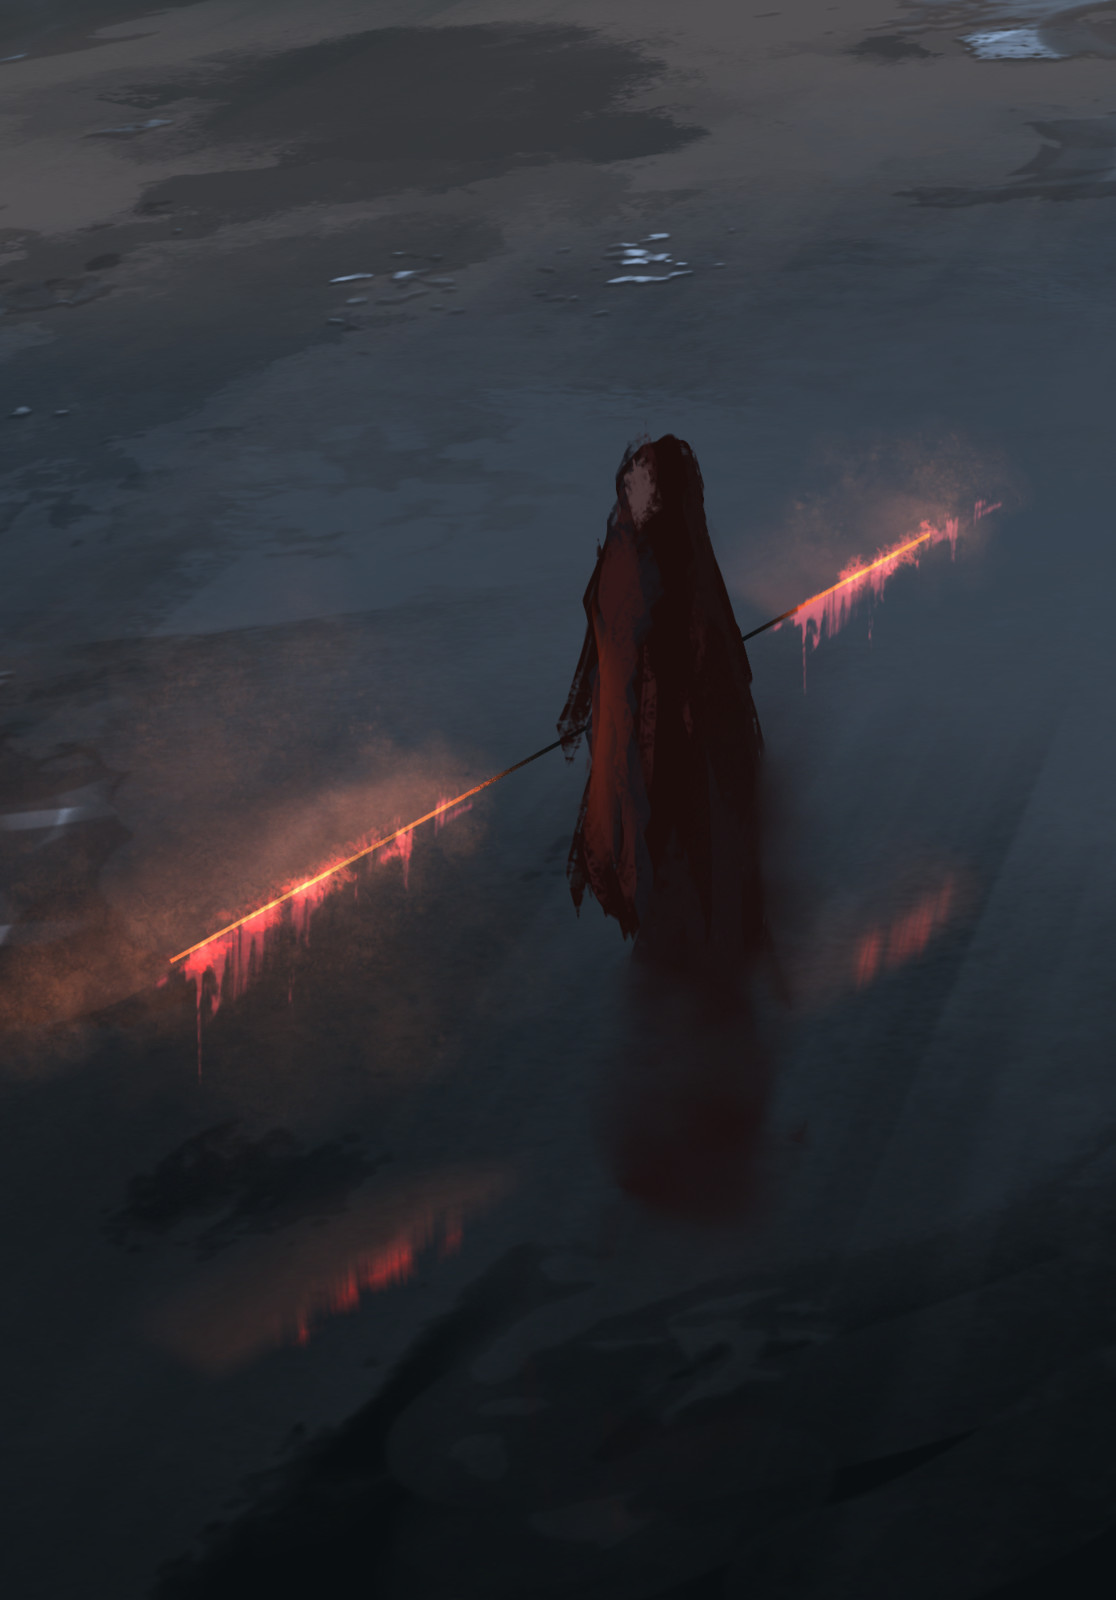 Overheated - 30 min (Daily spitpaint)